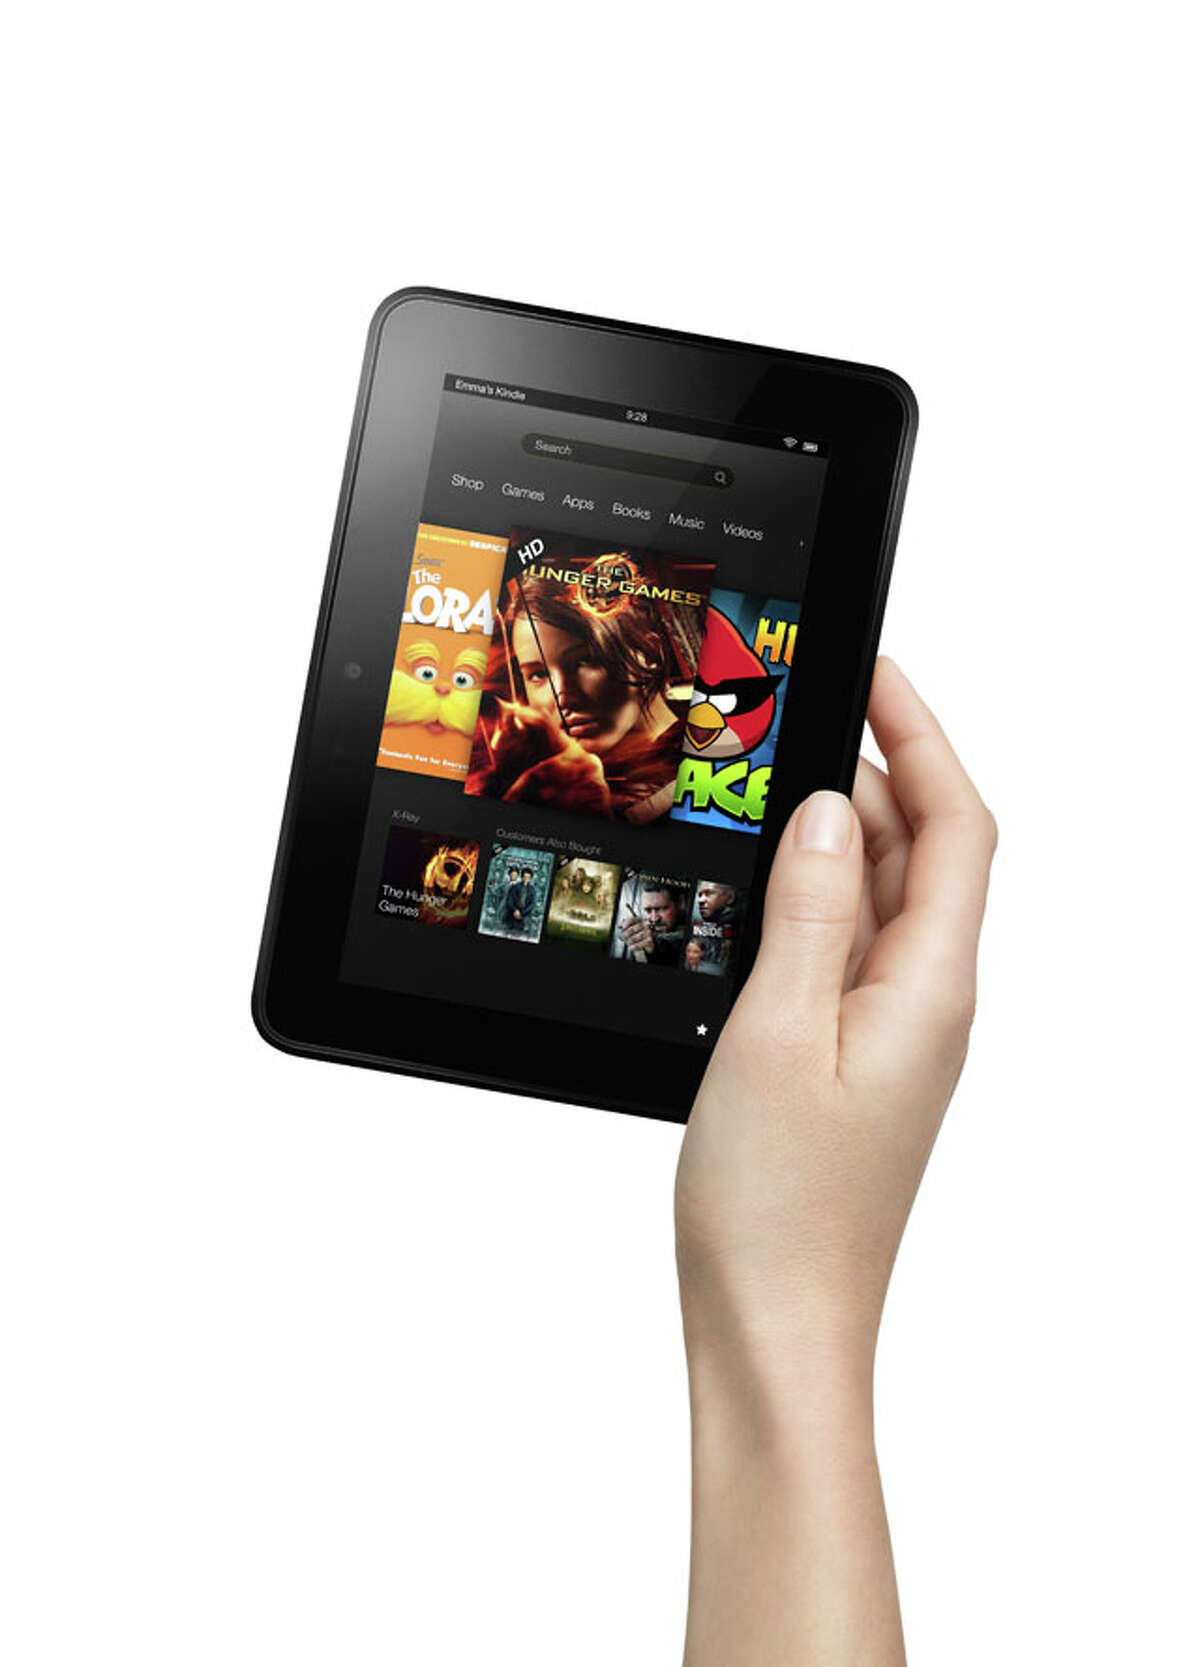 Tech Gifts - Kindle Fire HD ($199 at Amazon.com)